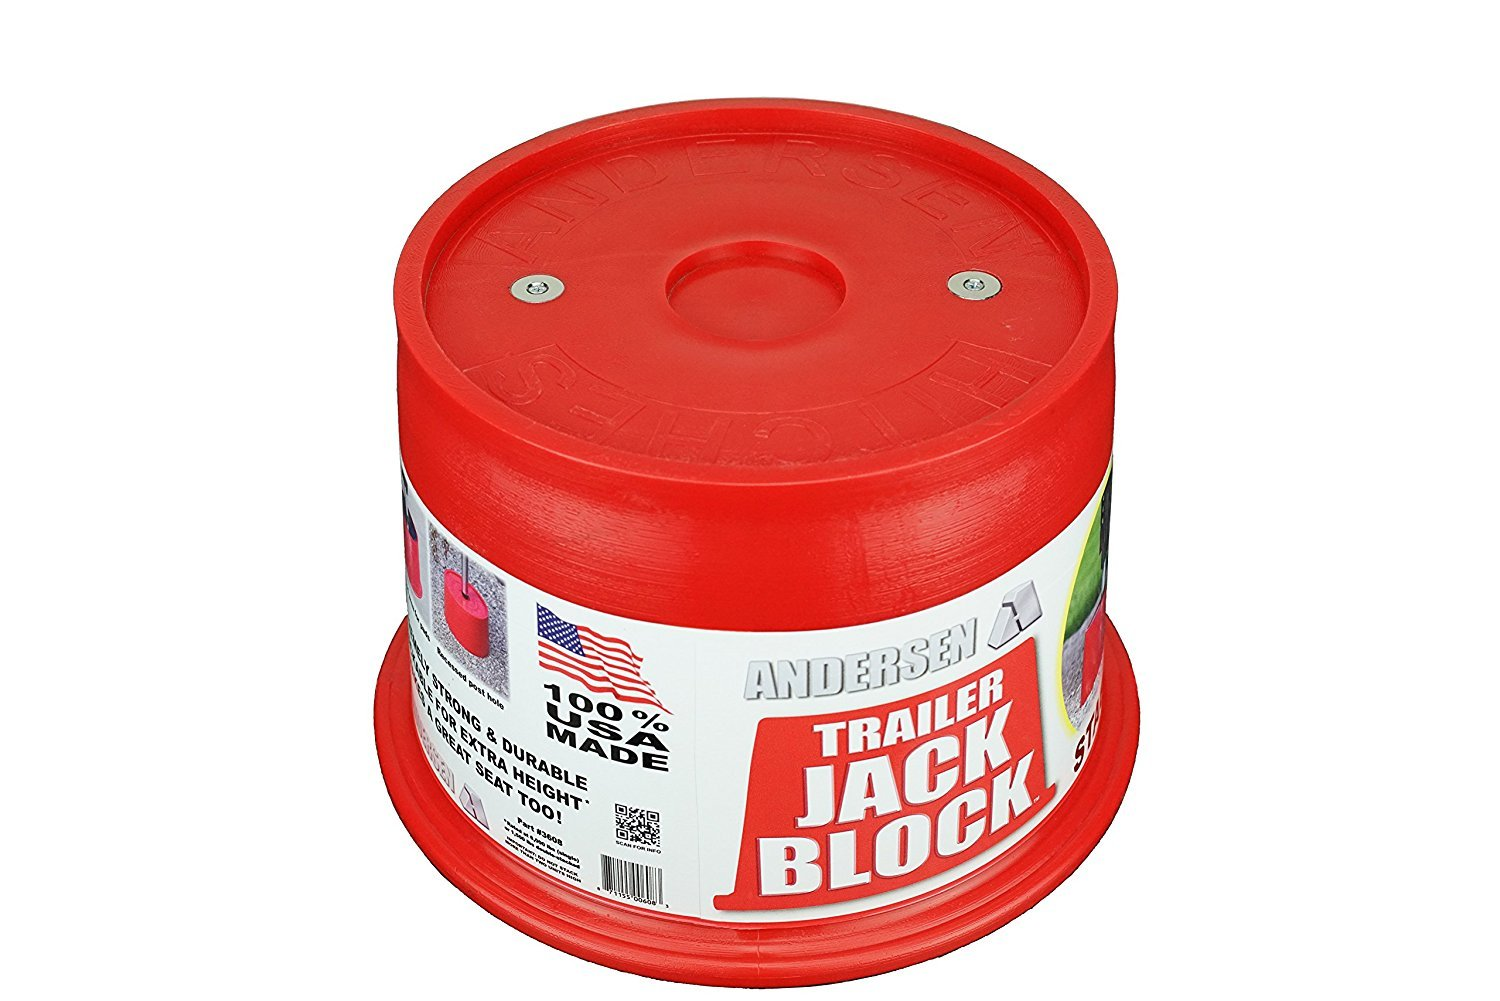 Andersen Hitches 3608 | Trailer Jack Block with Magnets (Single)